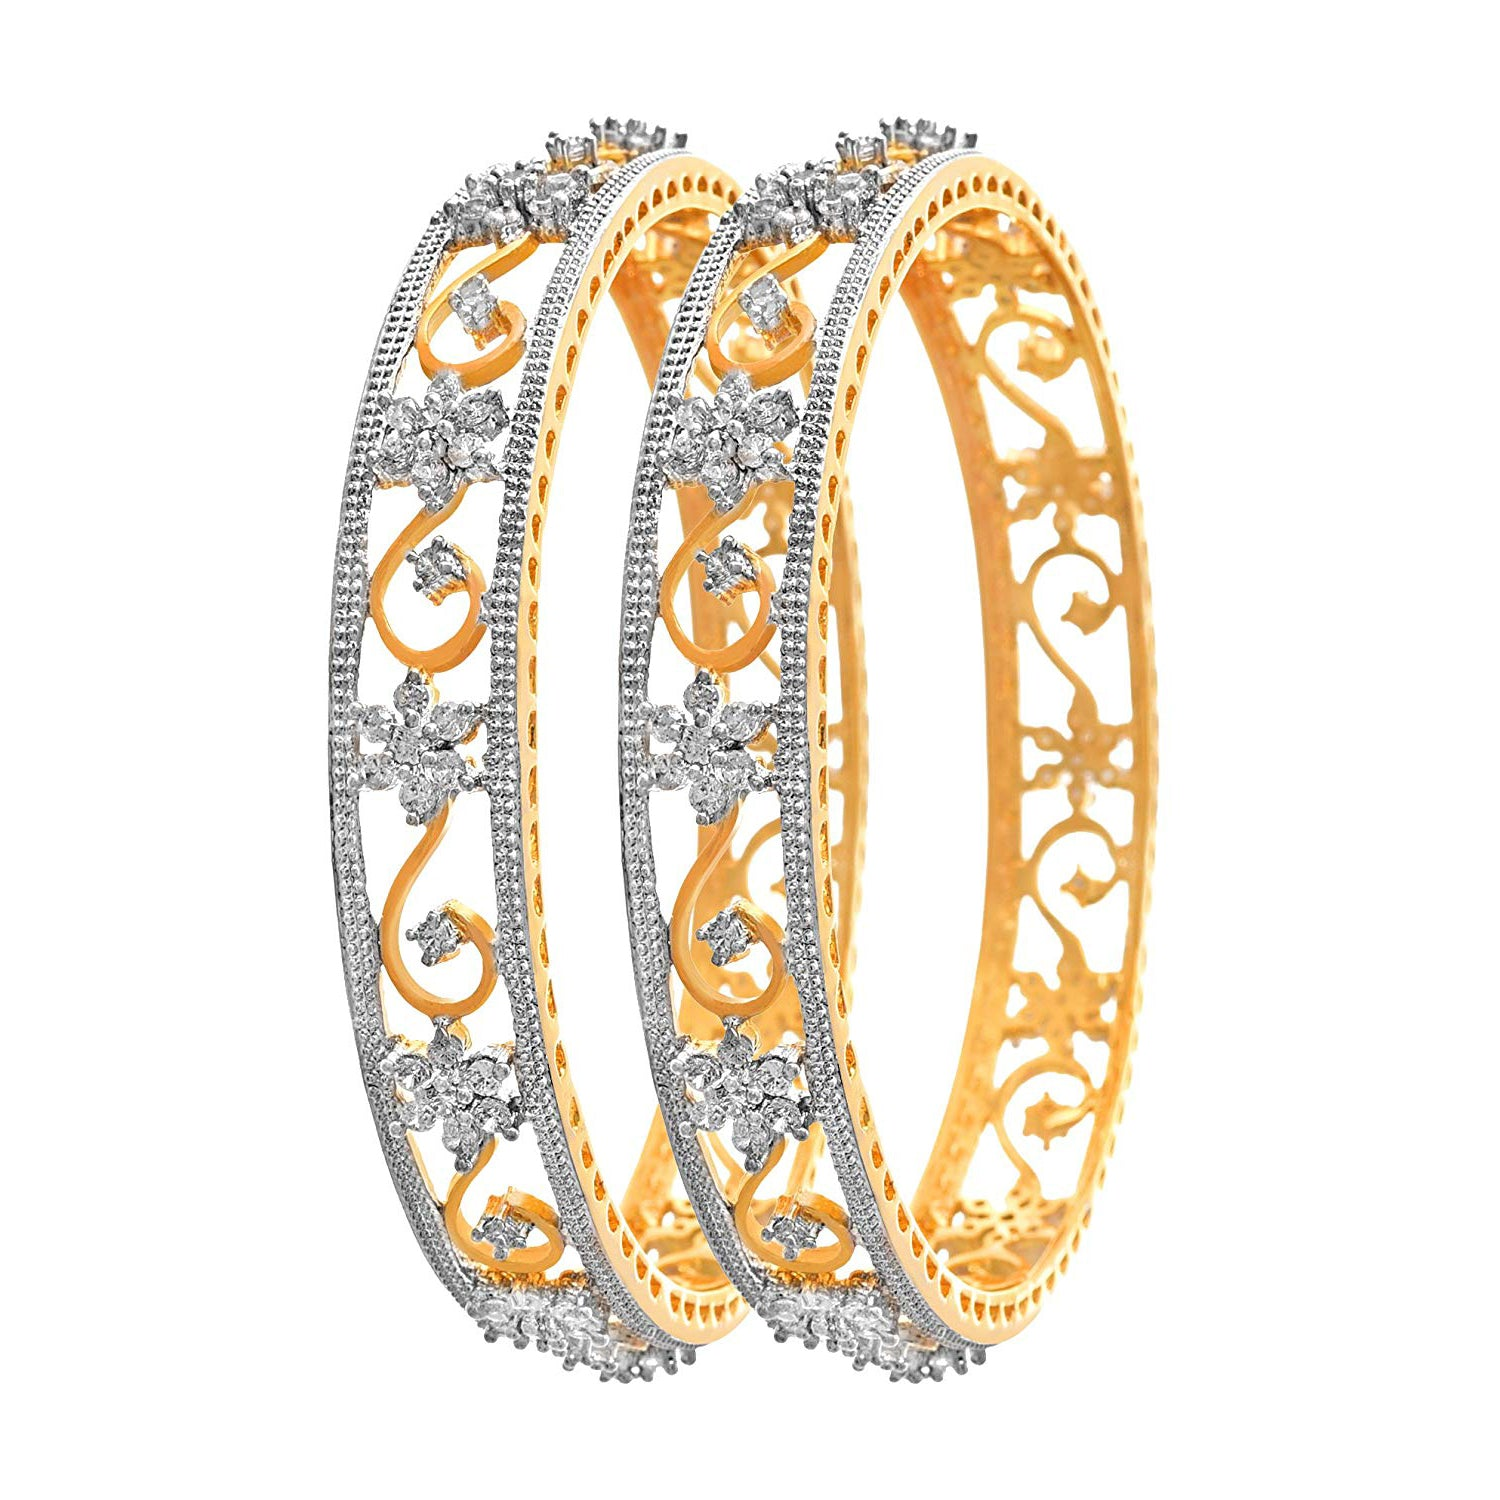 JFL -Traditional Ethnic Fusion Cz American Diamond Floral Flower Designer One Gram Gold Plated Bangles for Women & Girls.